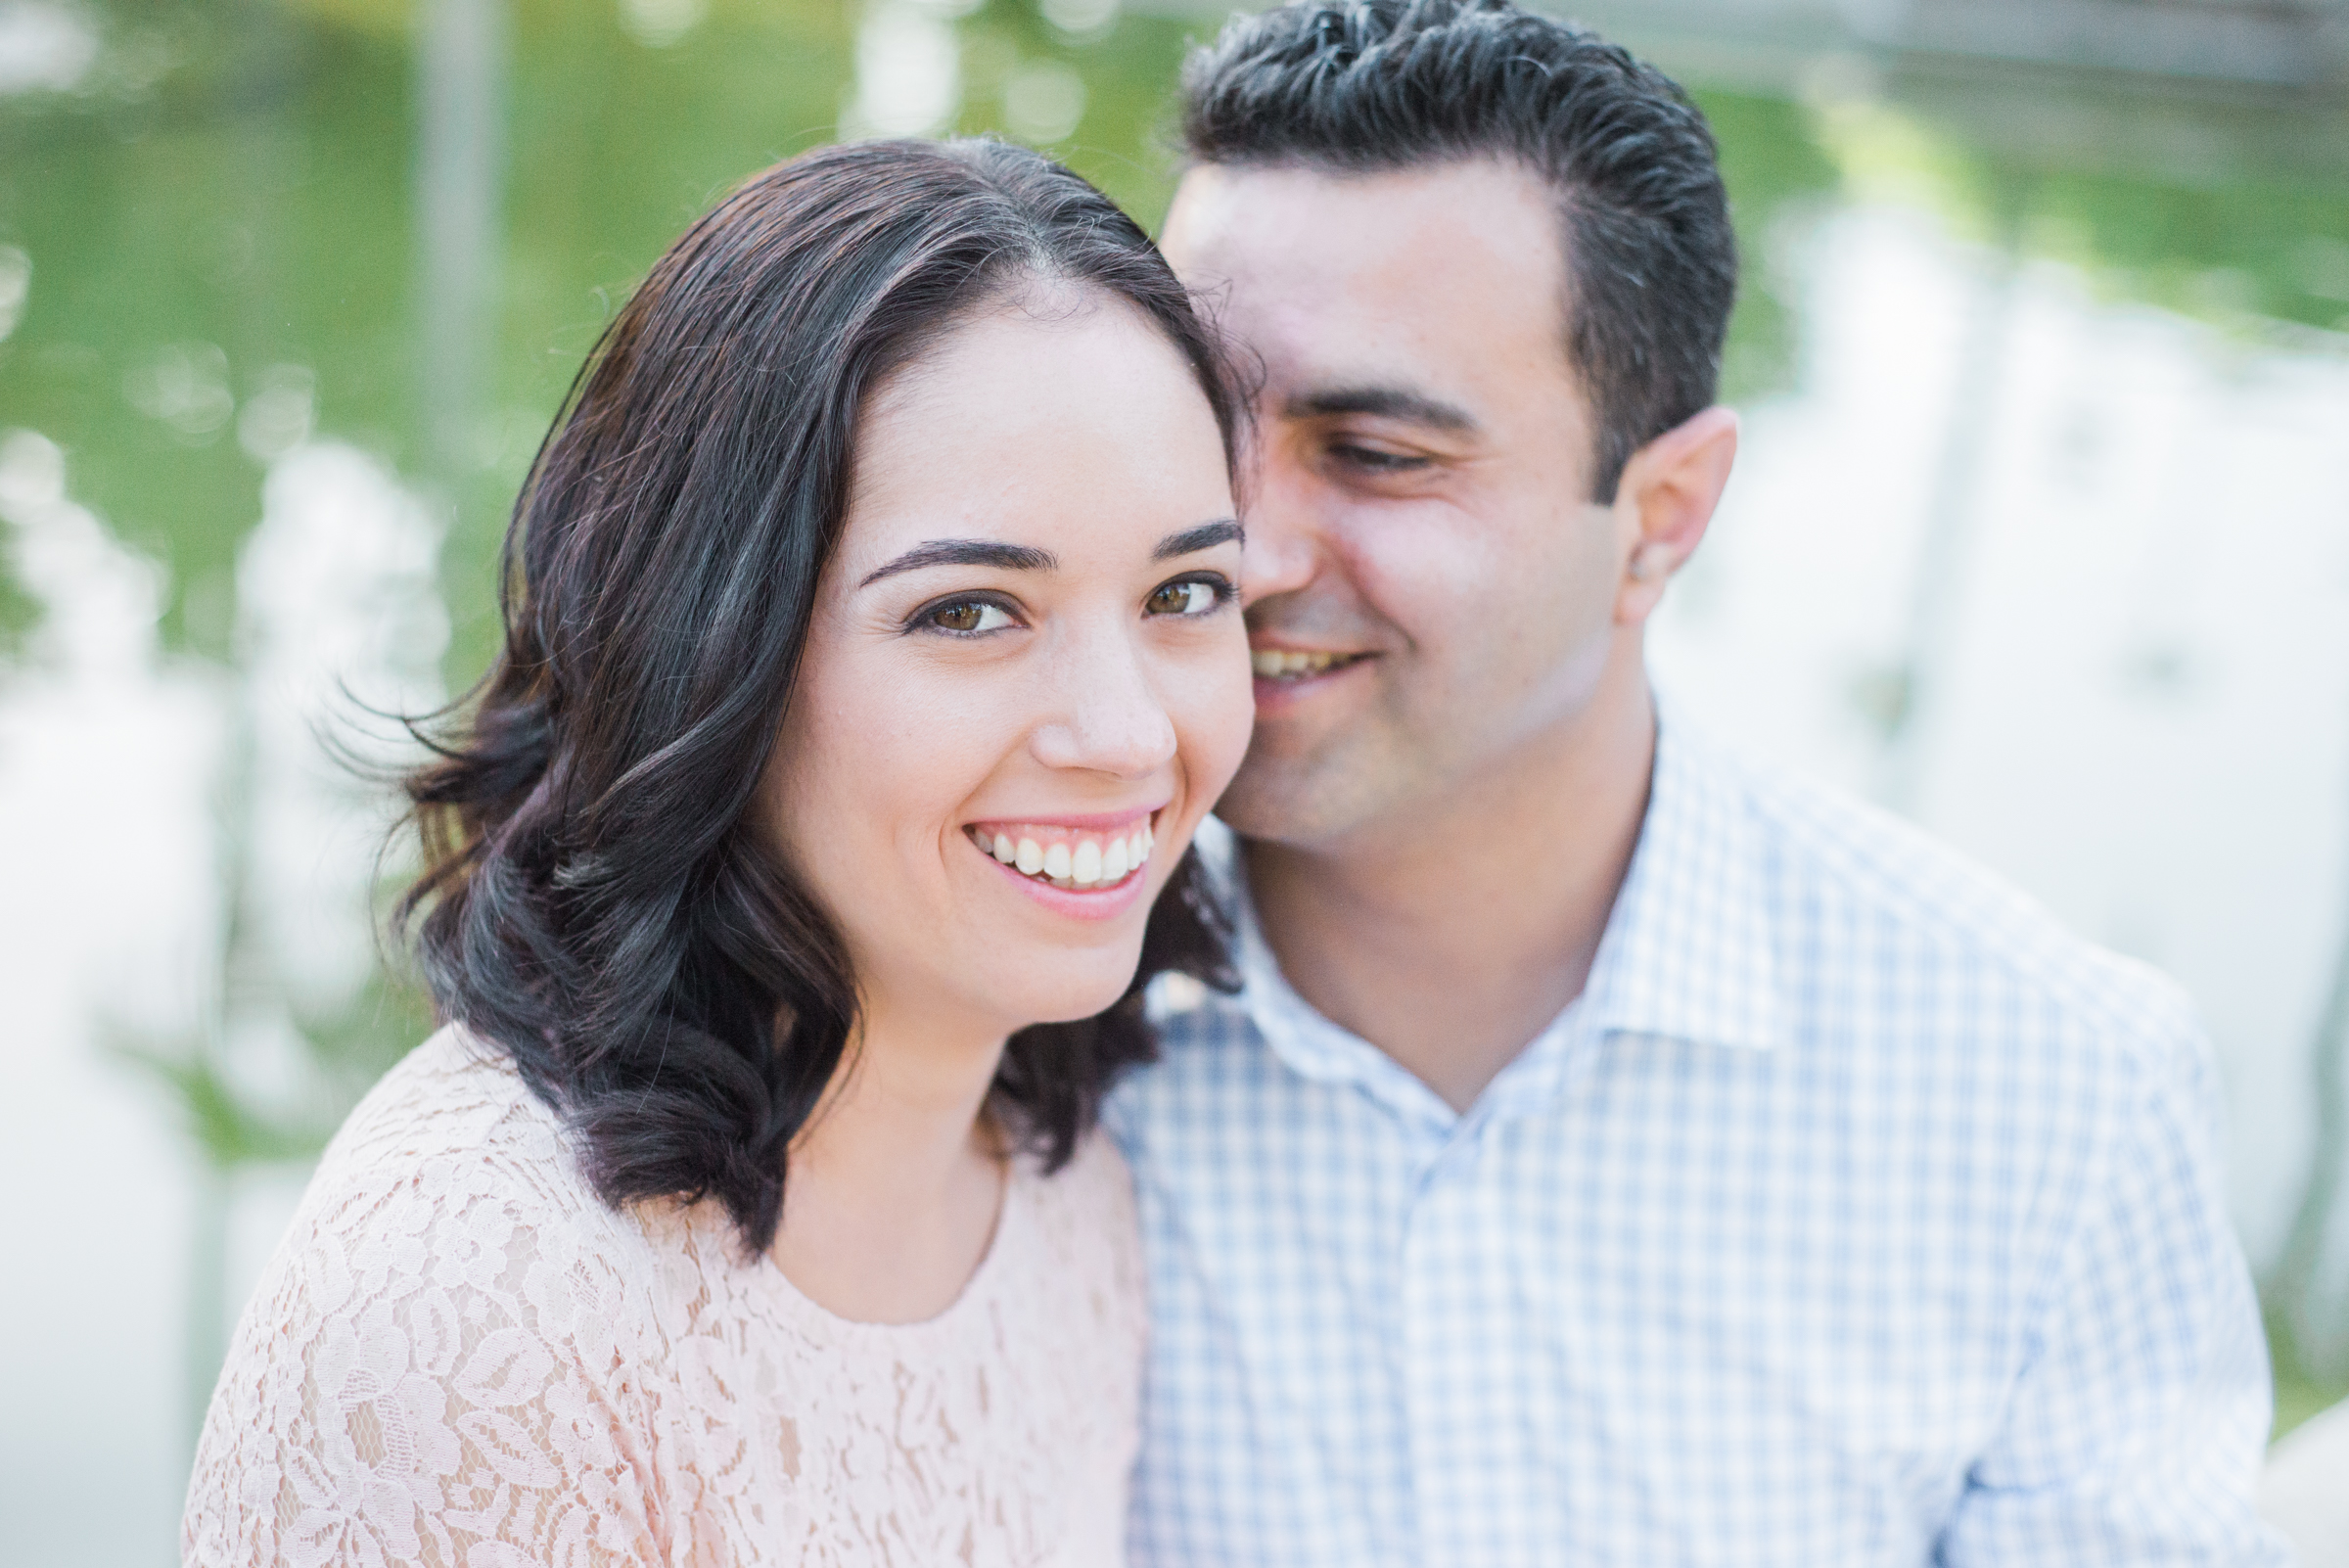 los_angeles_engagement_session_photography_Will_Rogers_Memorial_Park-7.jpg